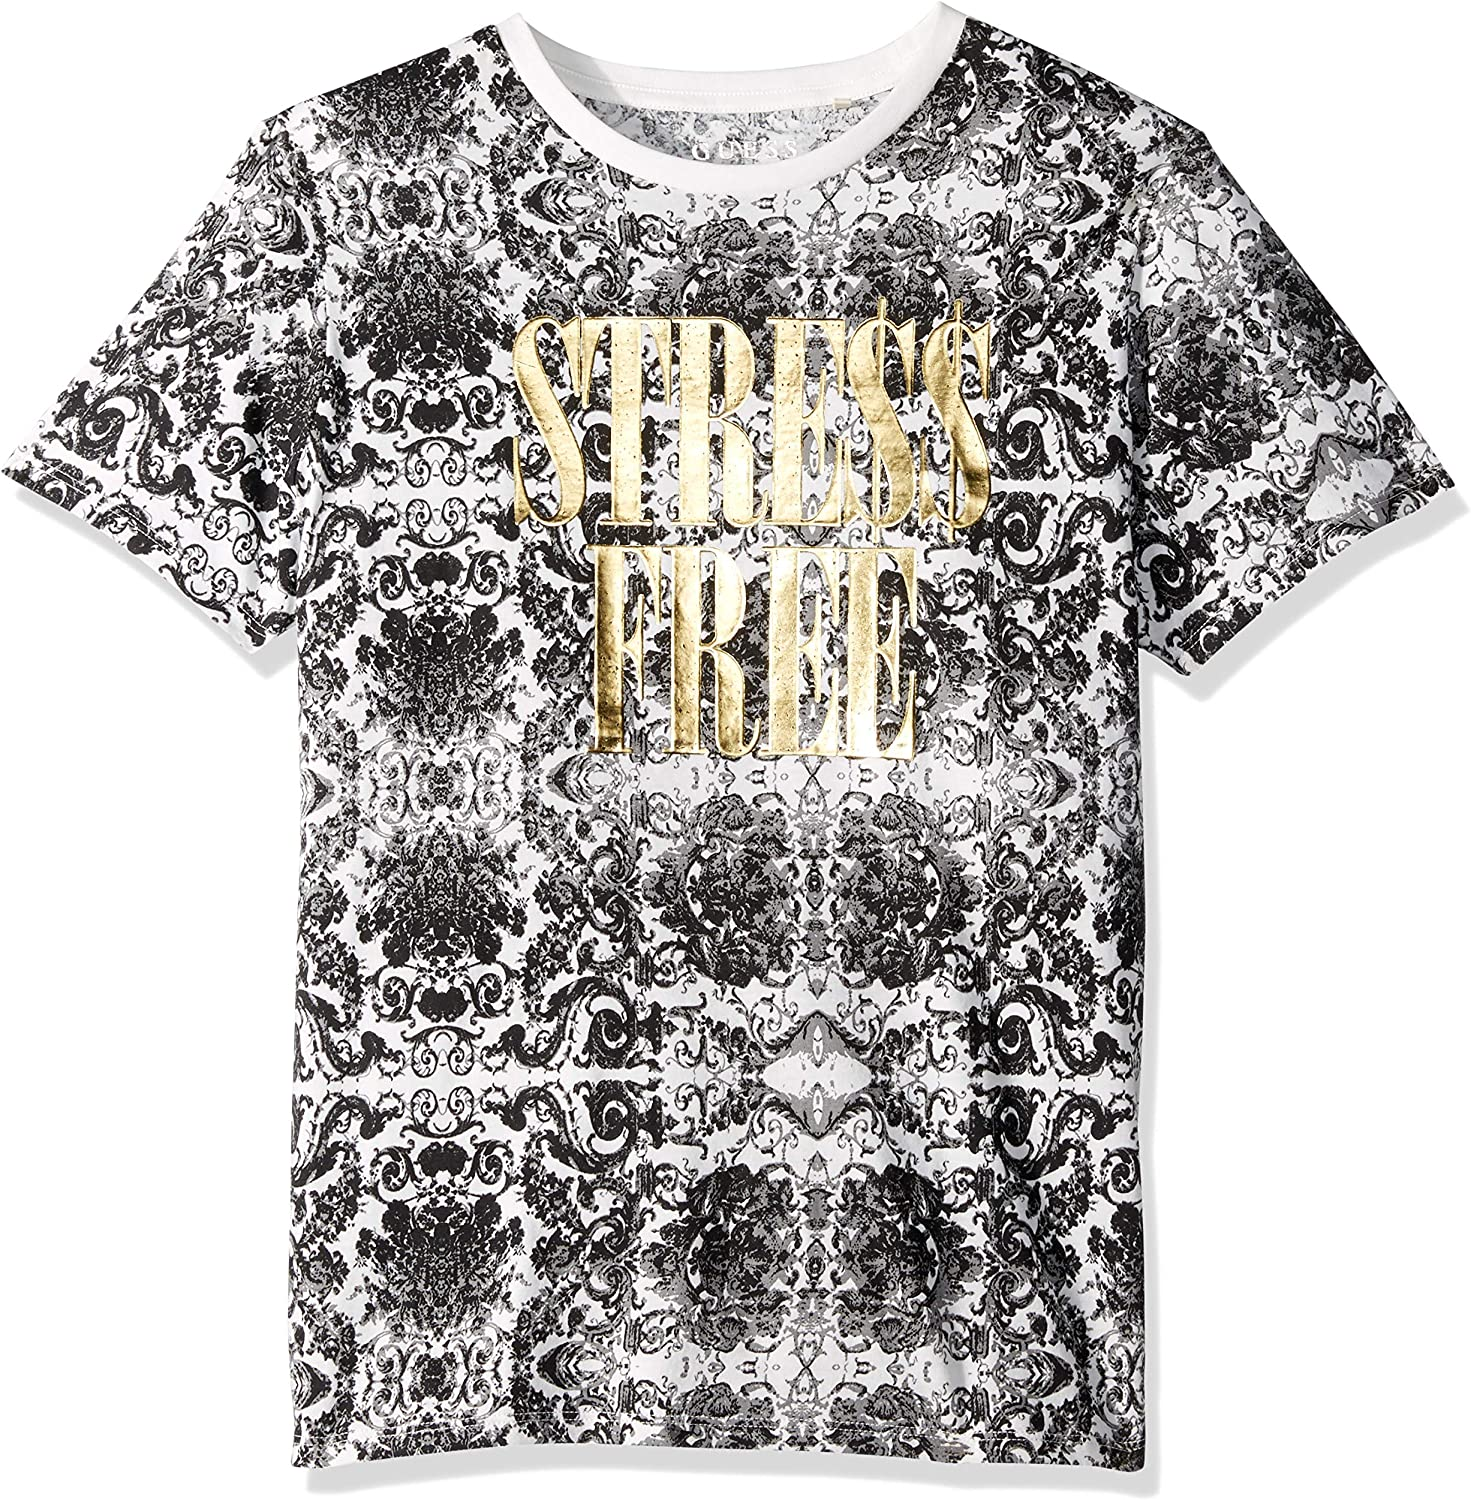 Guess Men's Stress Free Graphic Tee